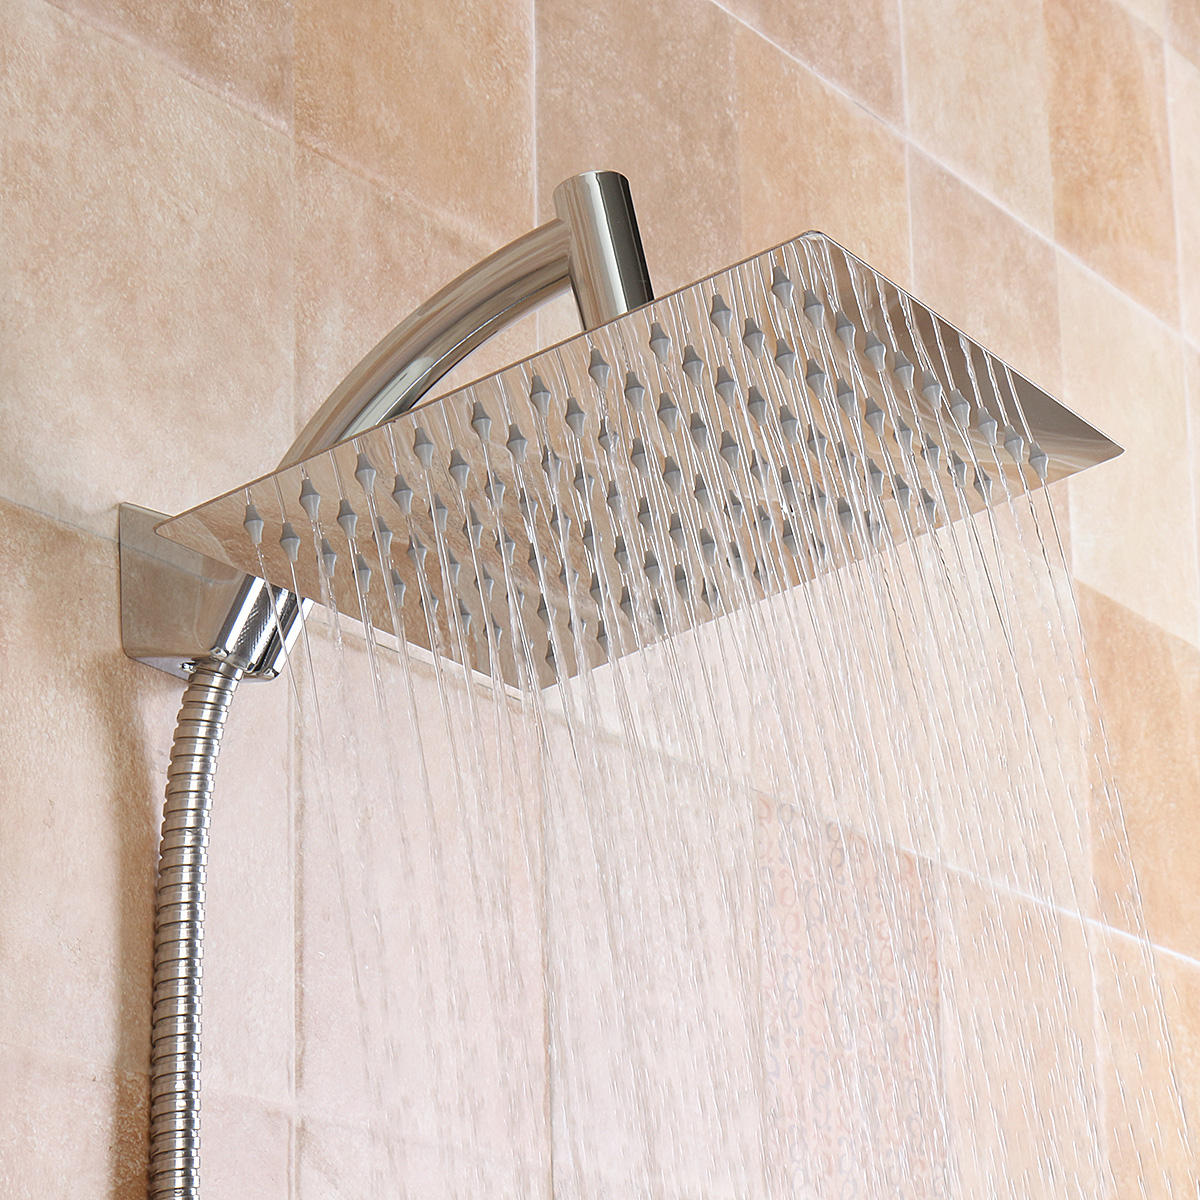 Square 8 Inch Rainfall Shower Head Extension With Shower Arm Hose Kit Overhead